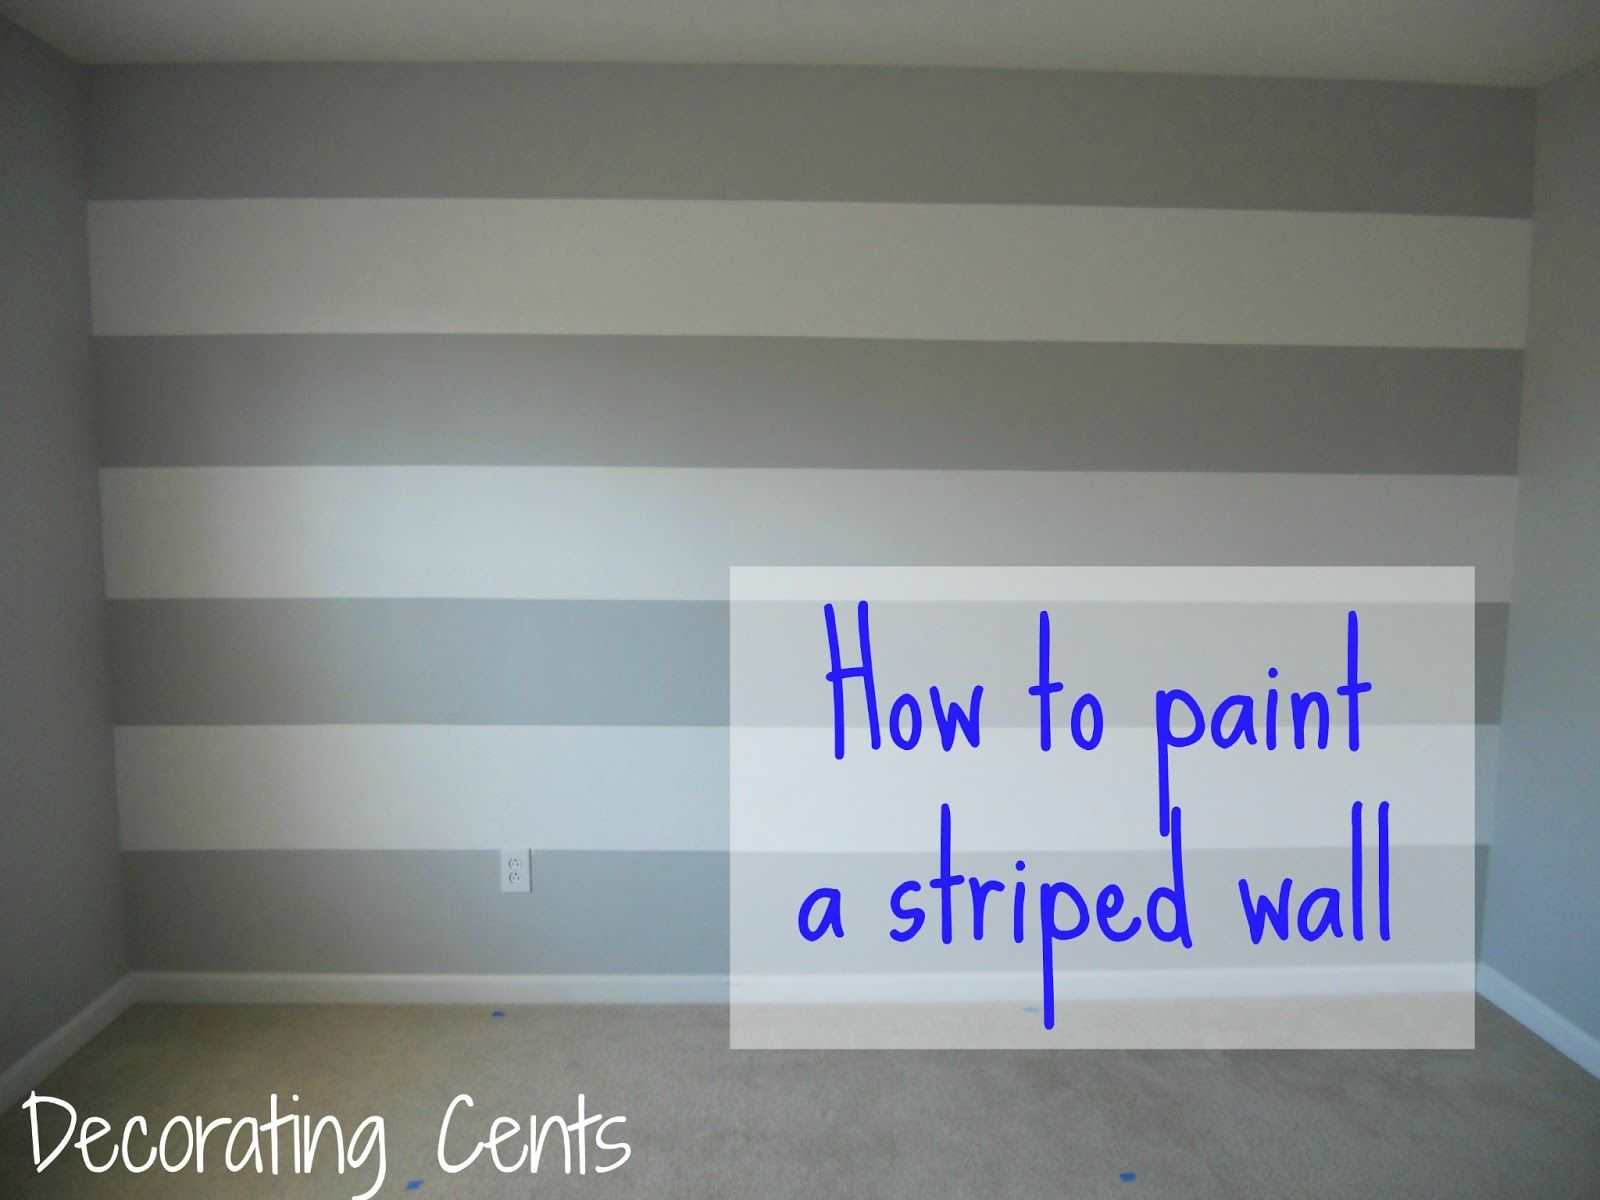 Decorating Cents  how to paint a striped wall. Best 25  Striped wall paints ideas on Pinterest   Striped walls